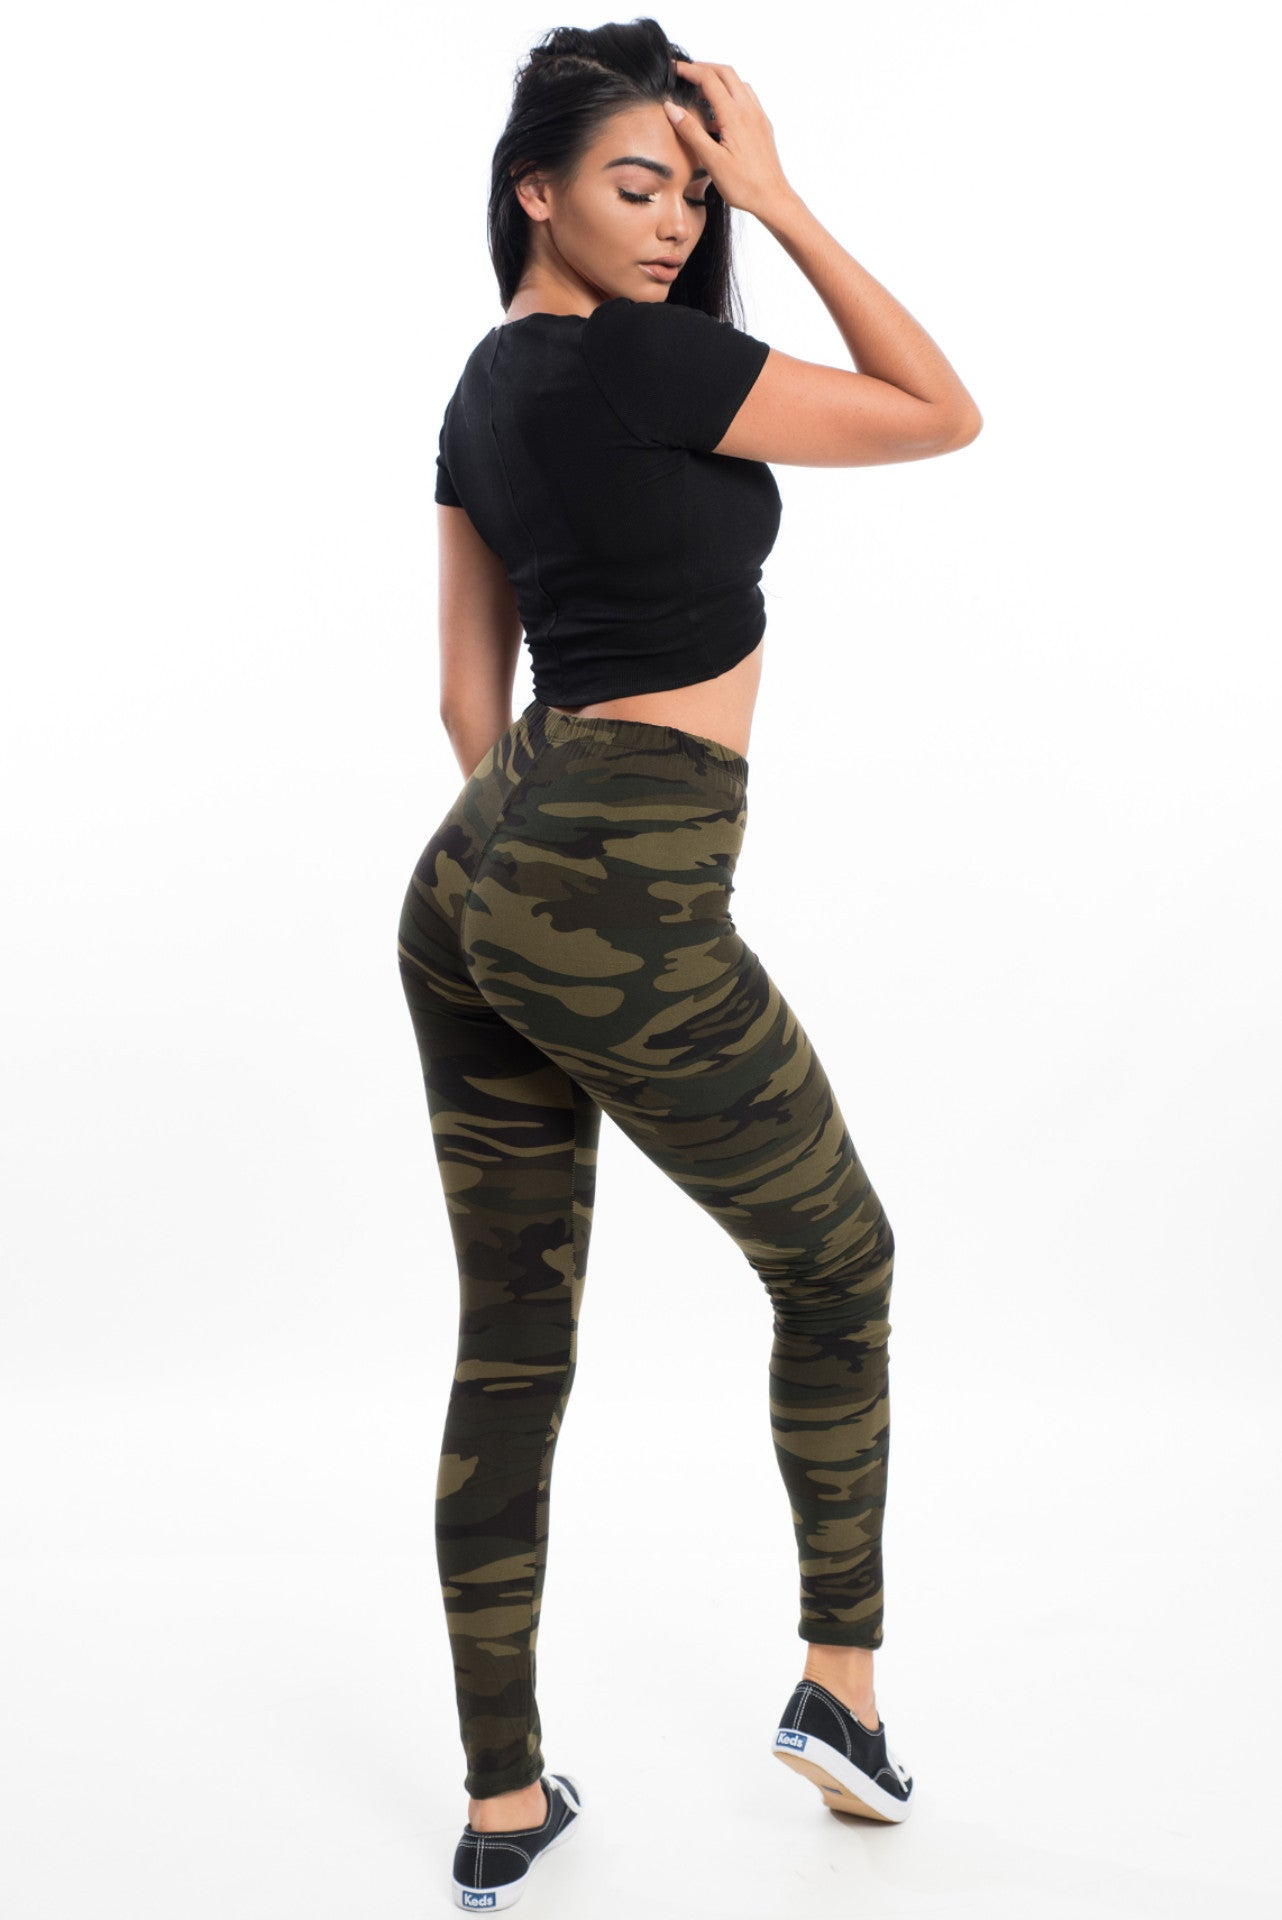 Booty Love Leggings - Army Strong